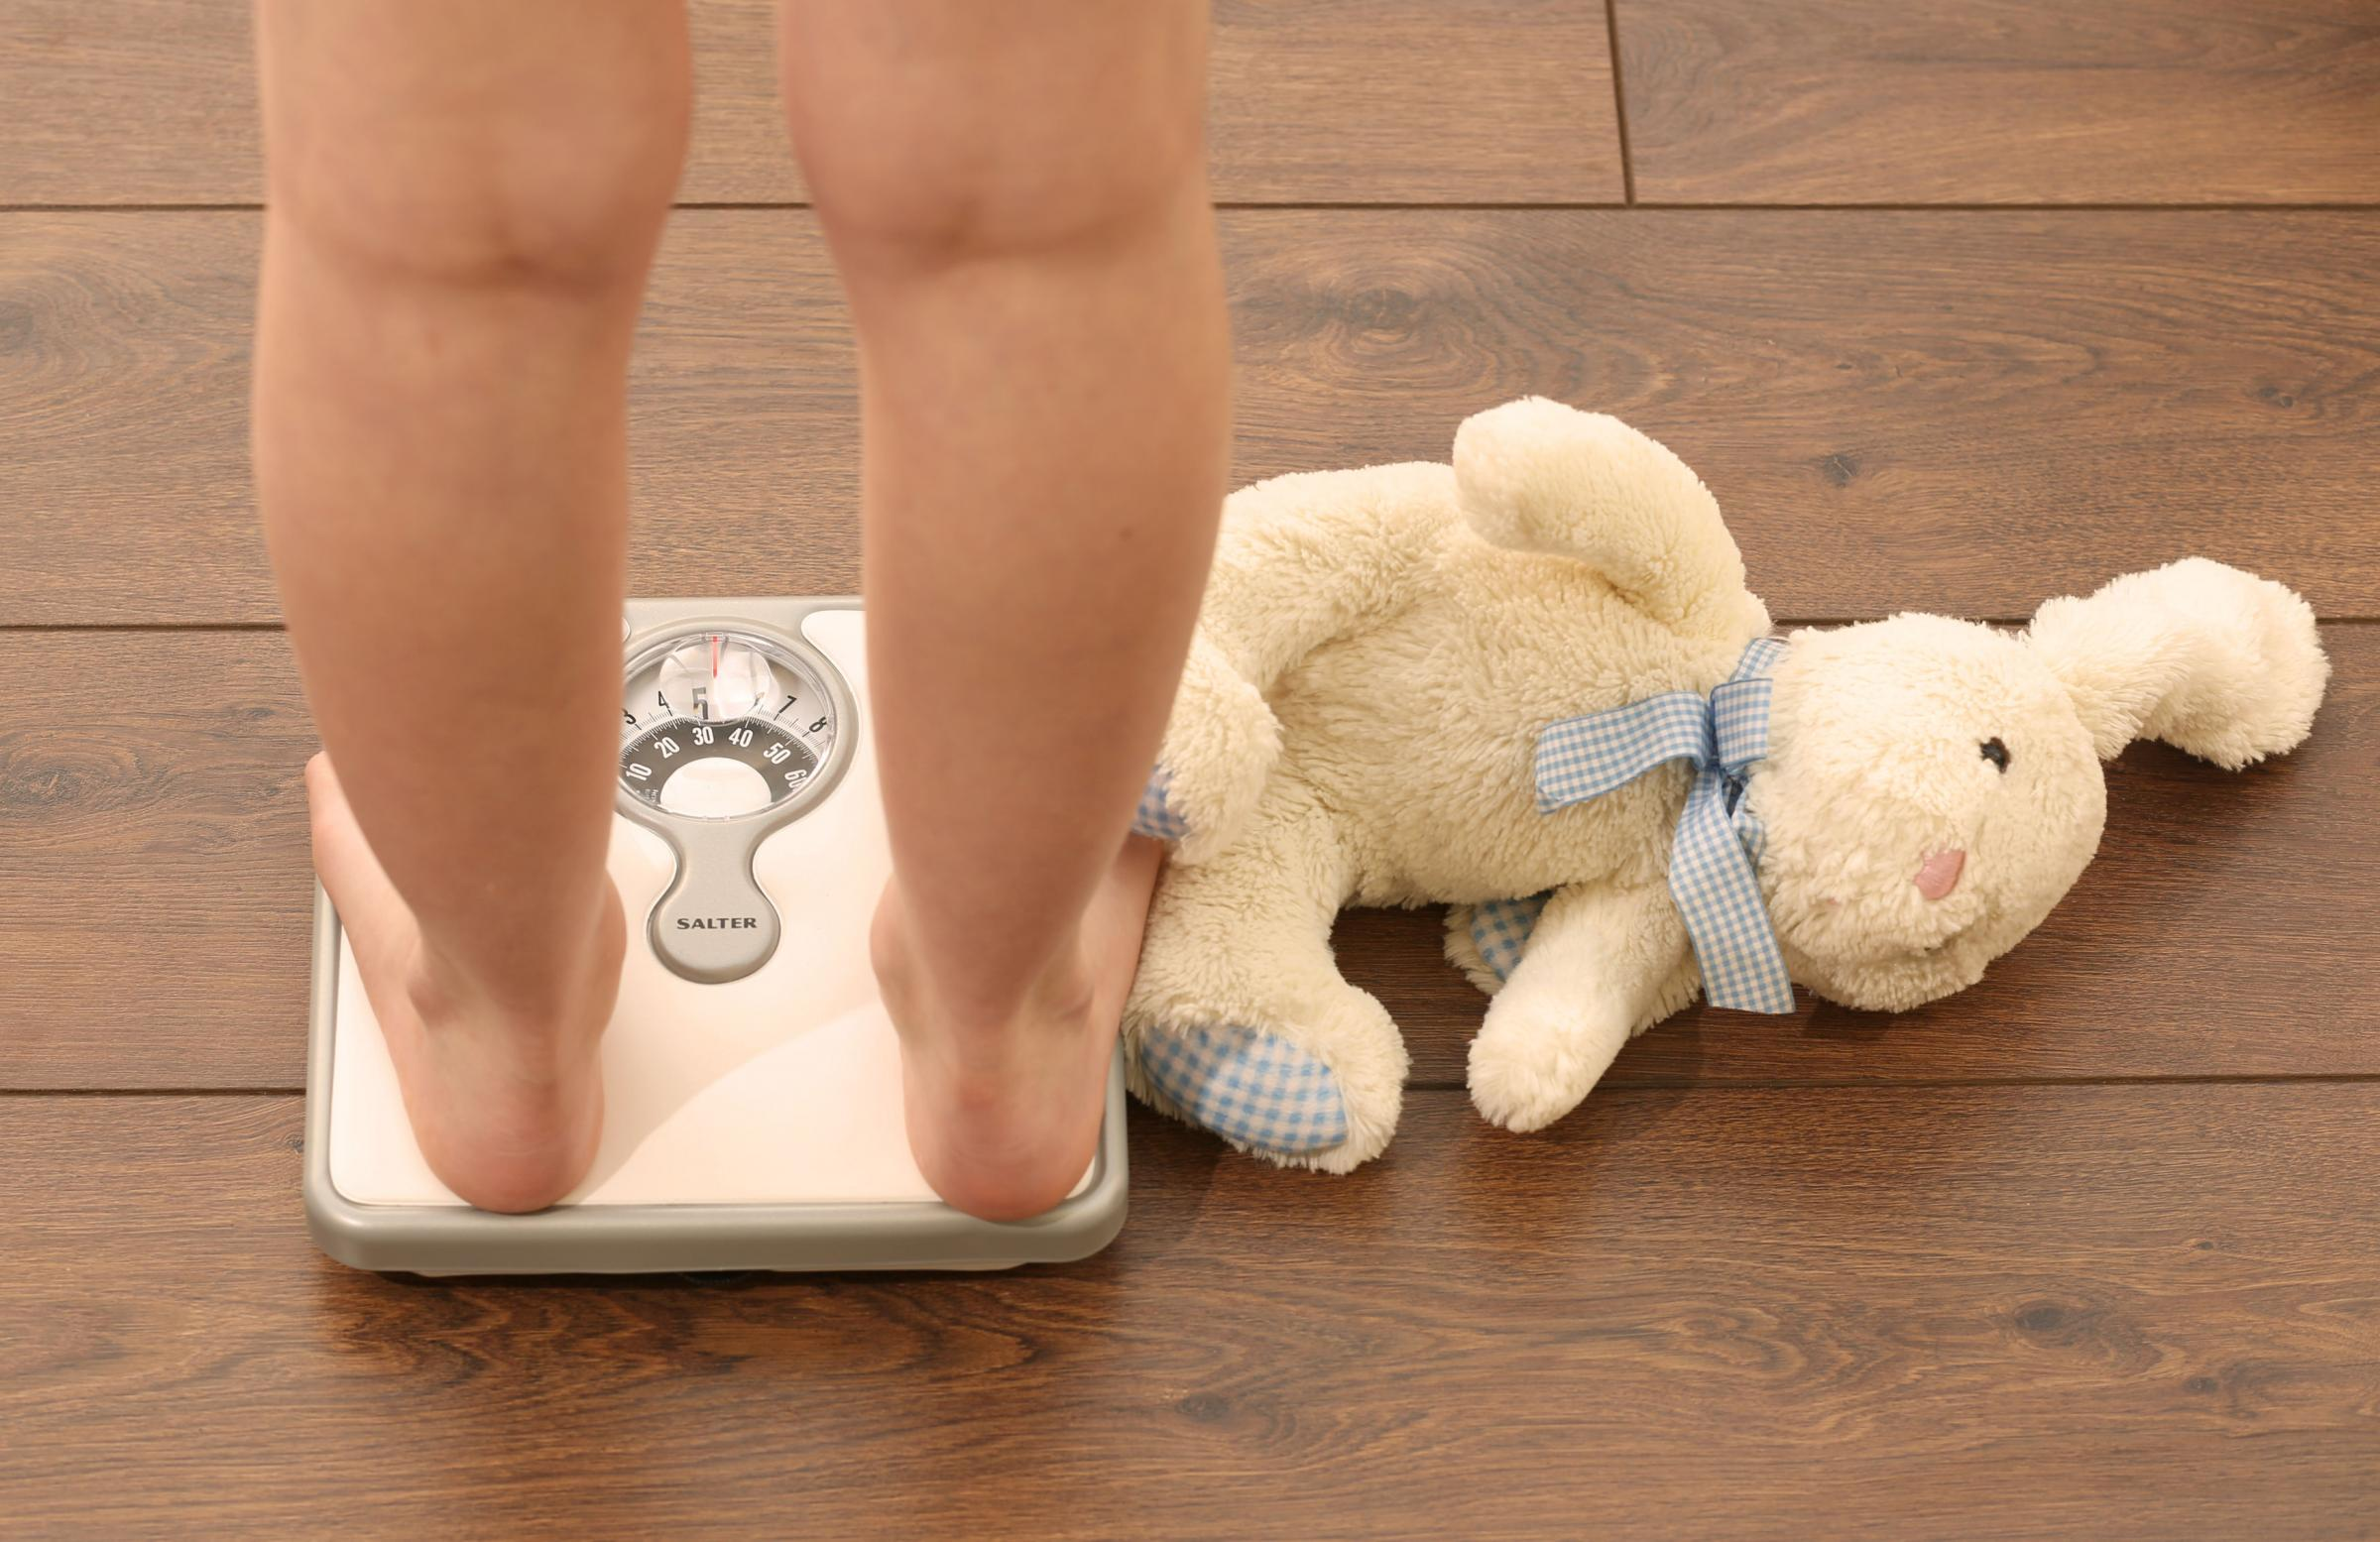 A total of around 12 per cent of children across Wales are obese